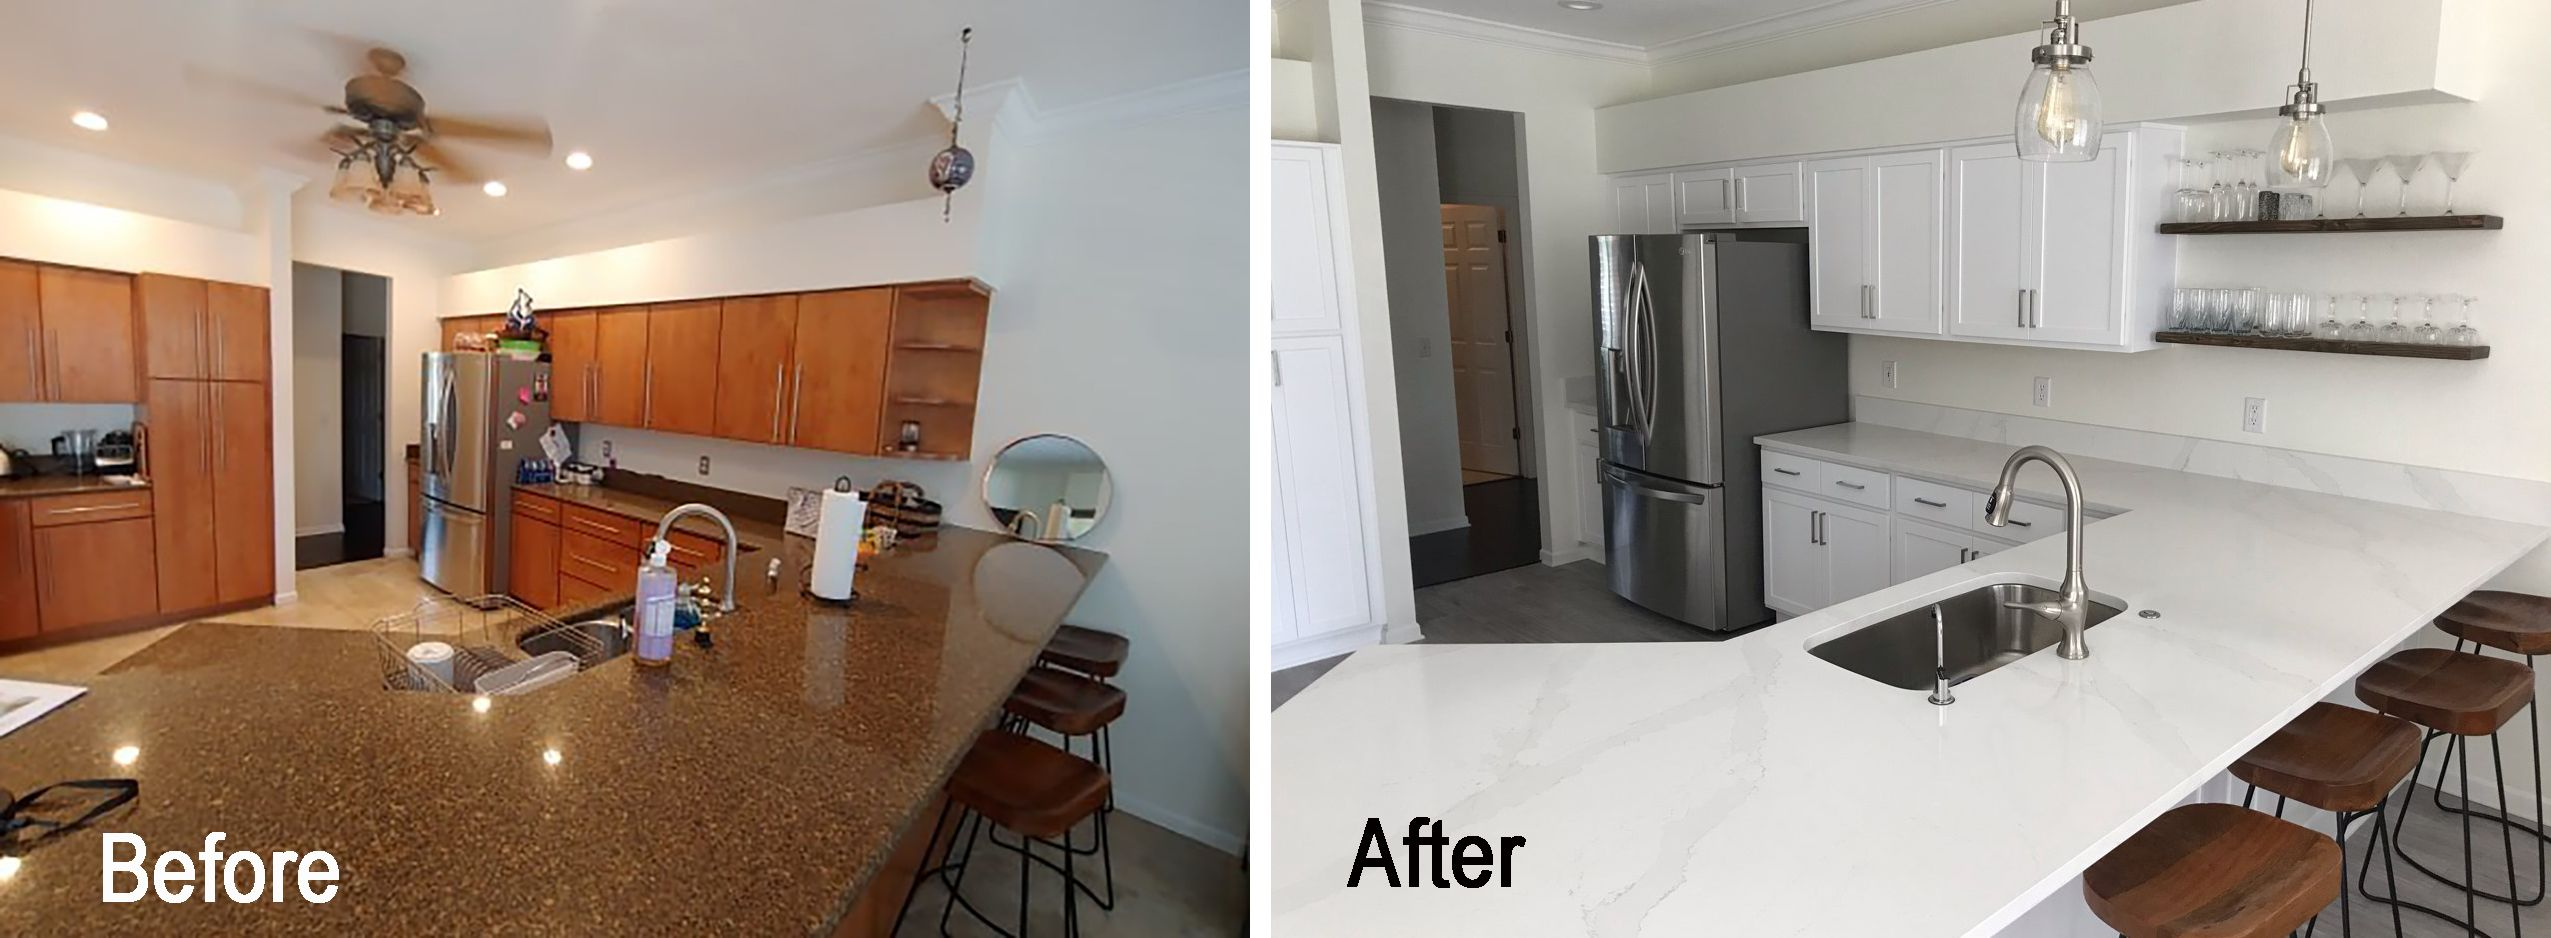 Contemporary Kitchen Remodel Done In Painted White Contemporary Kitchen Remodel Contemporary Kitchen Kitchen Remodel